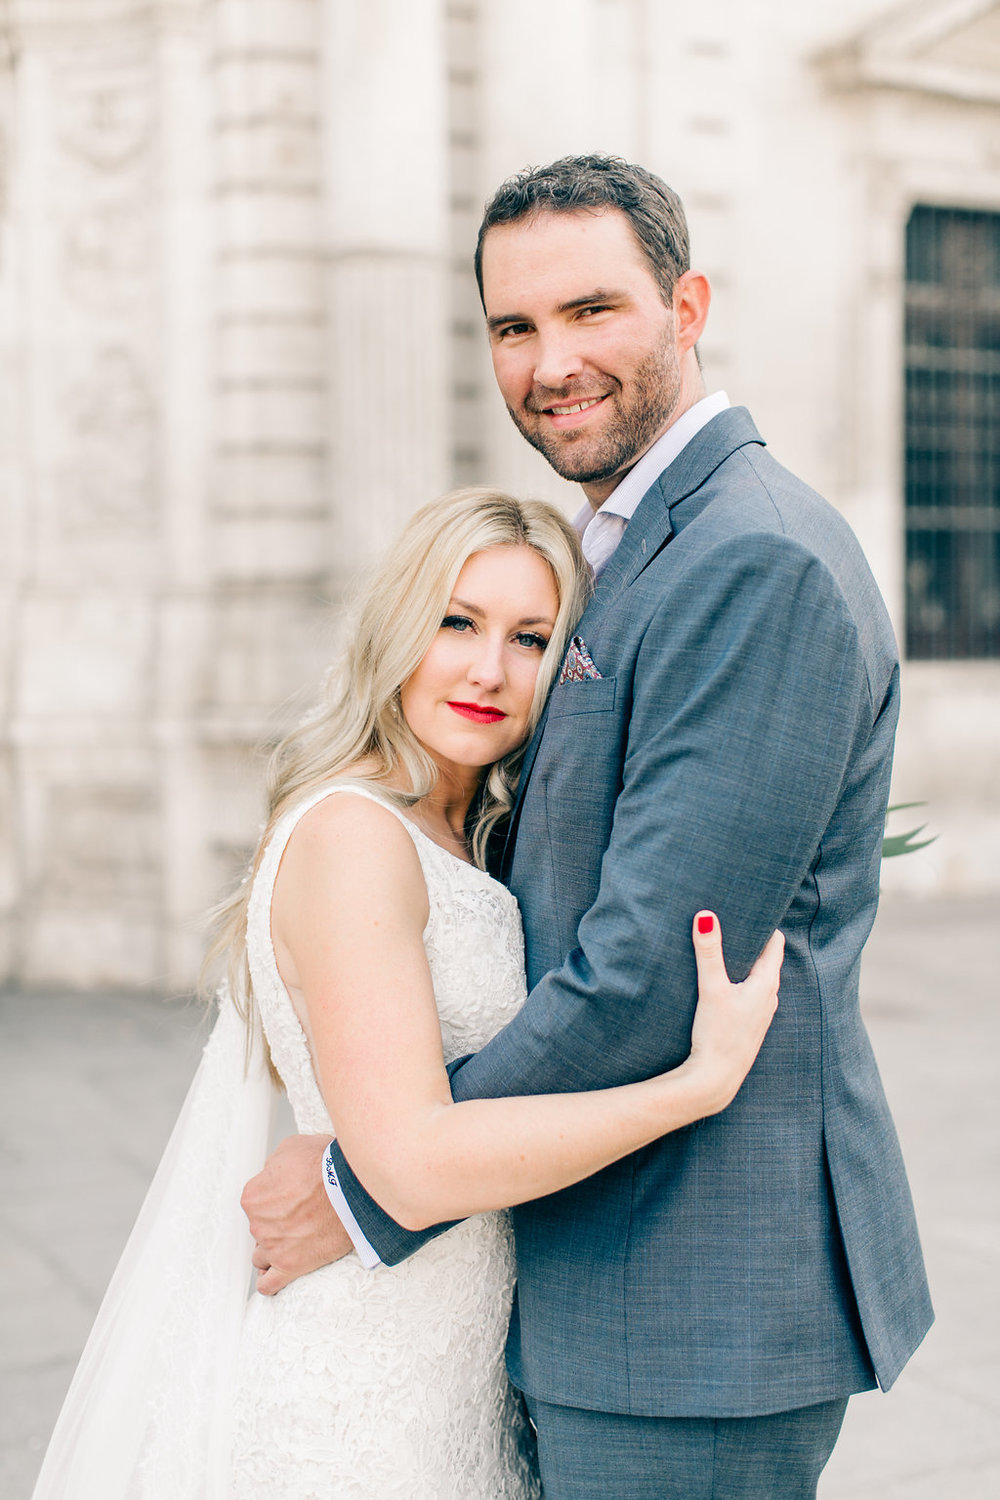 Couples Portrait Vienna Glenn Wedding Photography